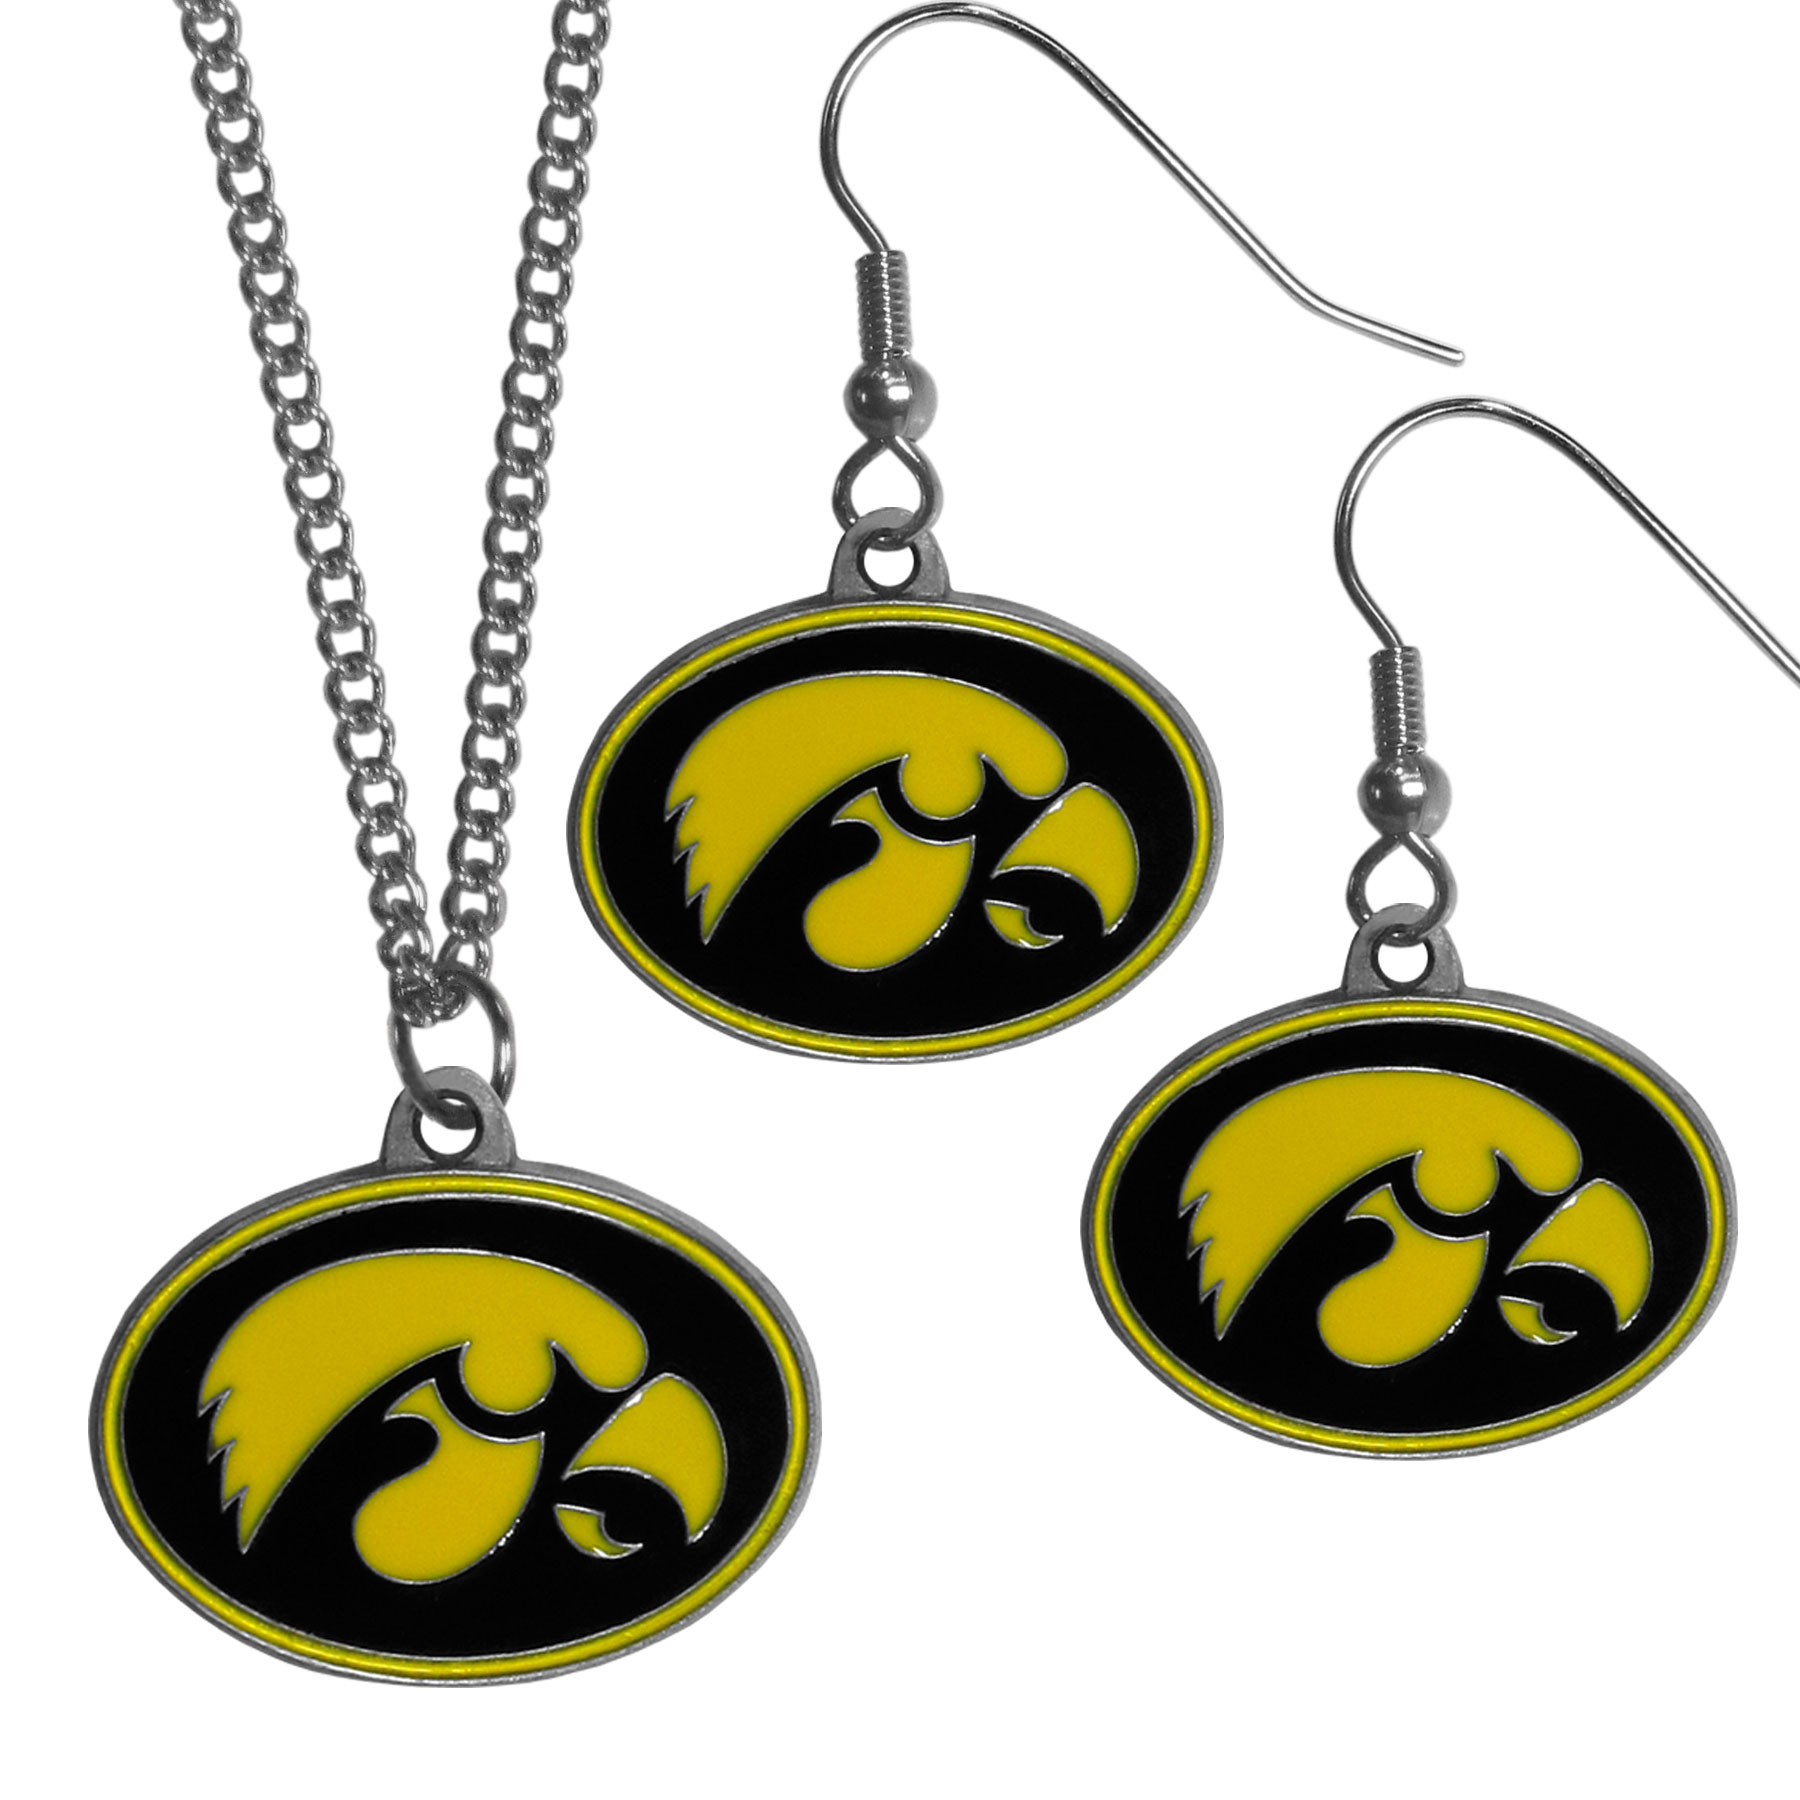 Iowa Hawkeyes Dangle Earrings and Chain Necklace Set - This classic jewelry set contains are most popular Iowa Hawkeyes dangle earrings and 22 inch chain necklace. The trendy, dangle earrings are lightweight and feature a fully cast metal team charm with enameled team colors. The matching necklace completes this fashion forward combo and is a spirited set that is perfect for game day but nice enough for everyday.